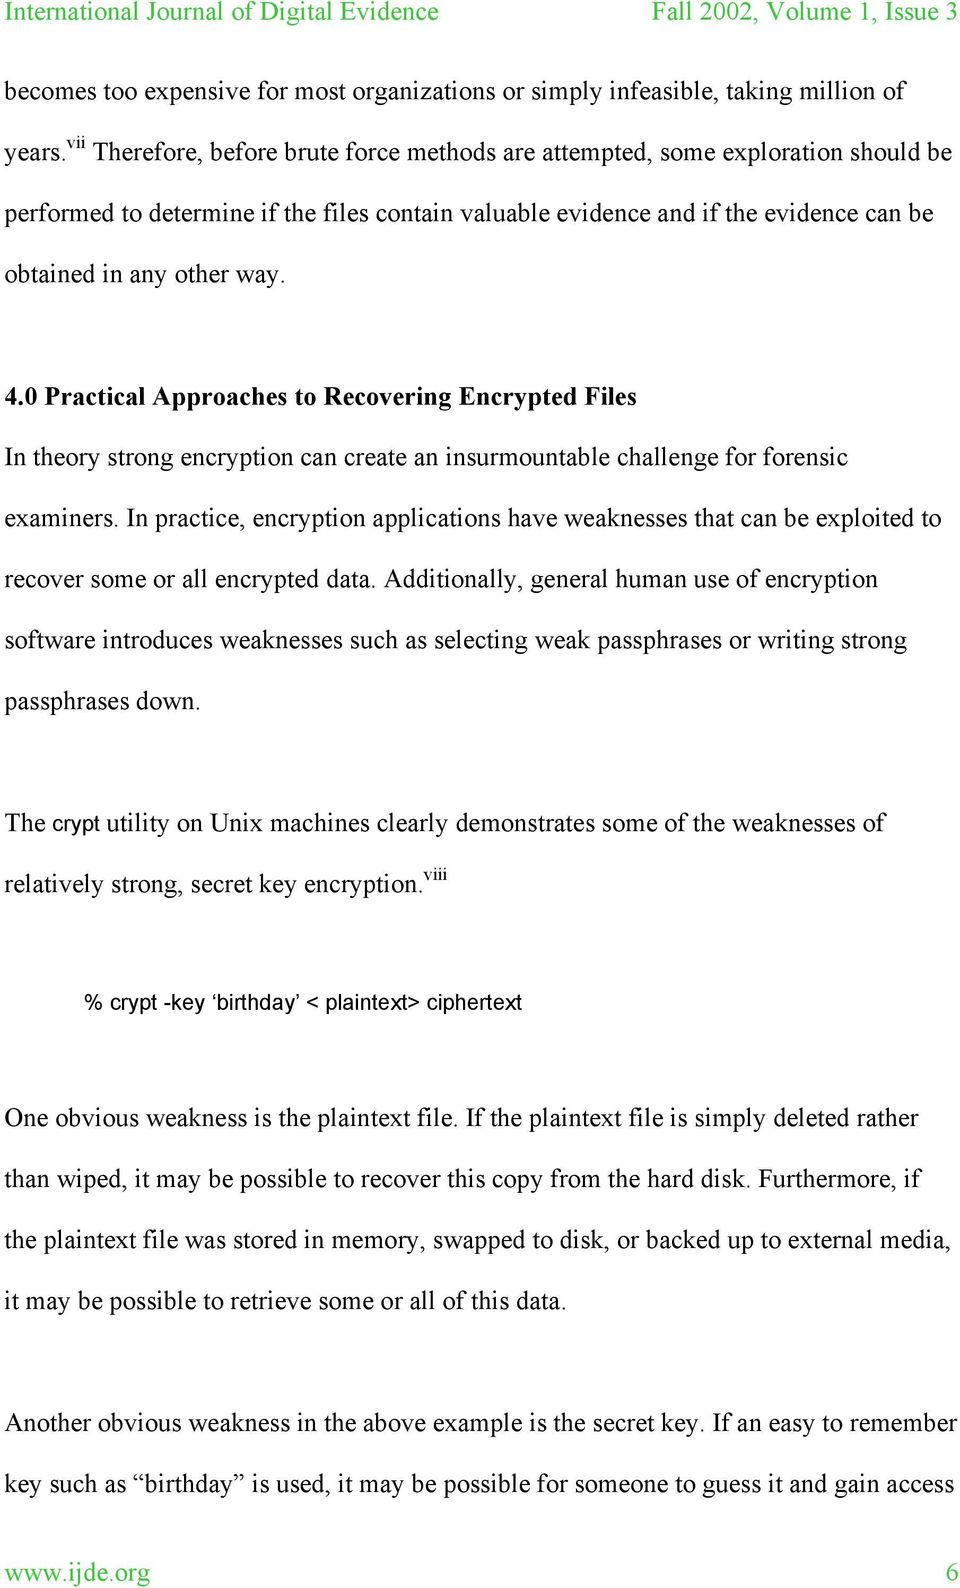 4.0 Practical Approaches to Recovering Encrypted Files In theory strong encryption can create an insurmountable challenge for forensic examiners.